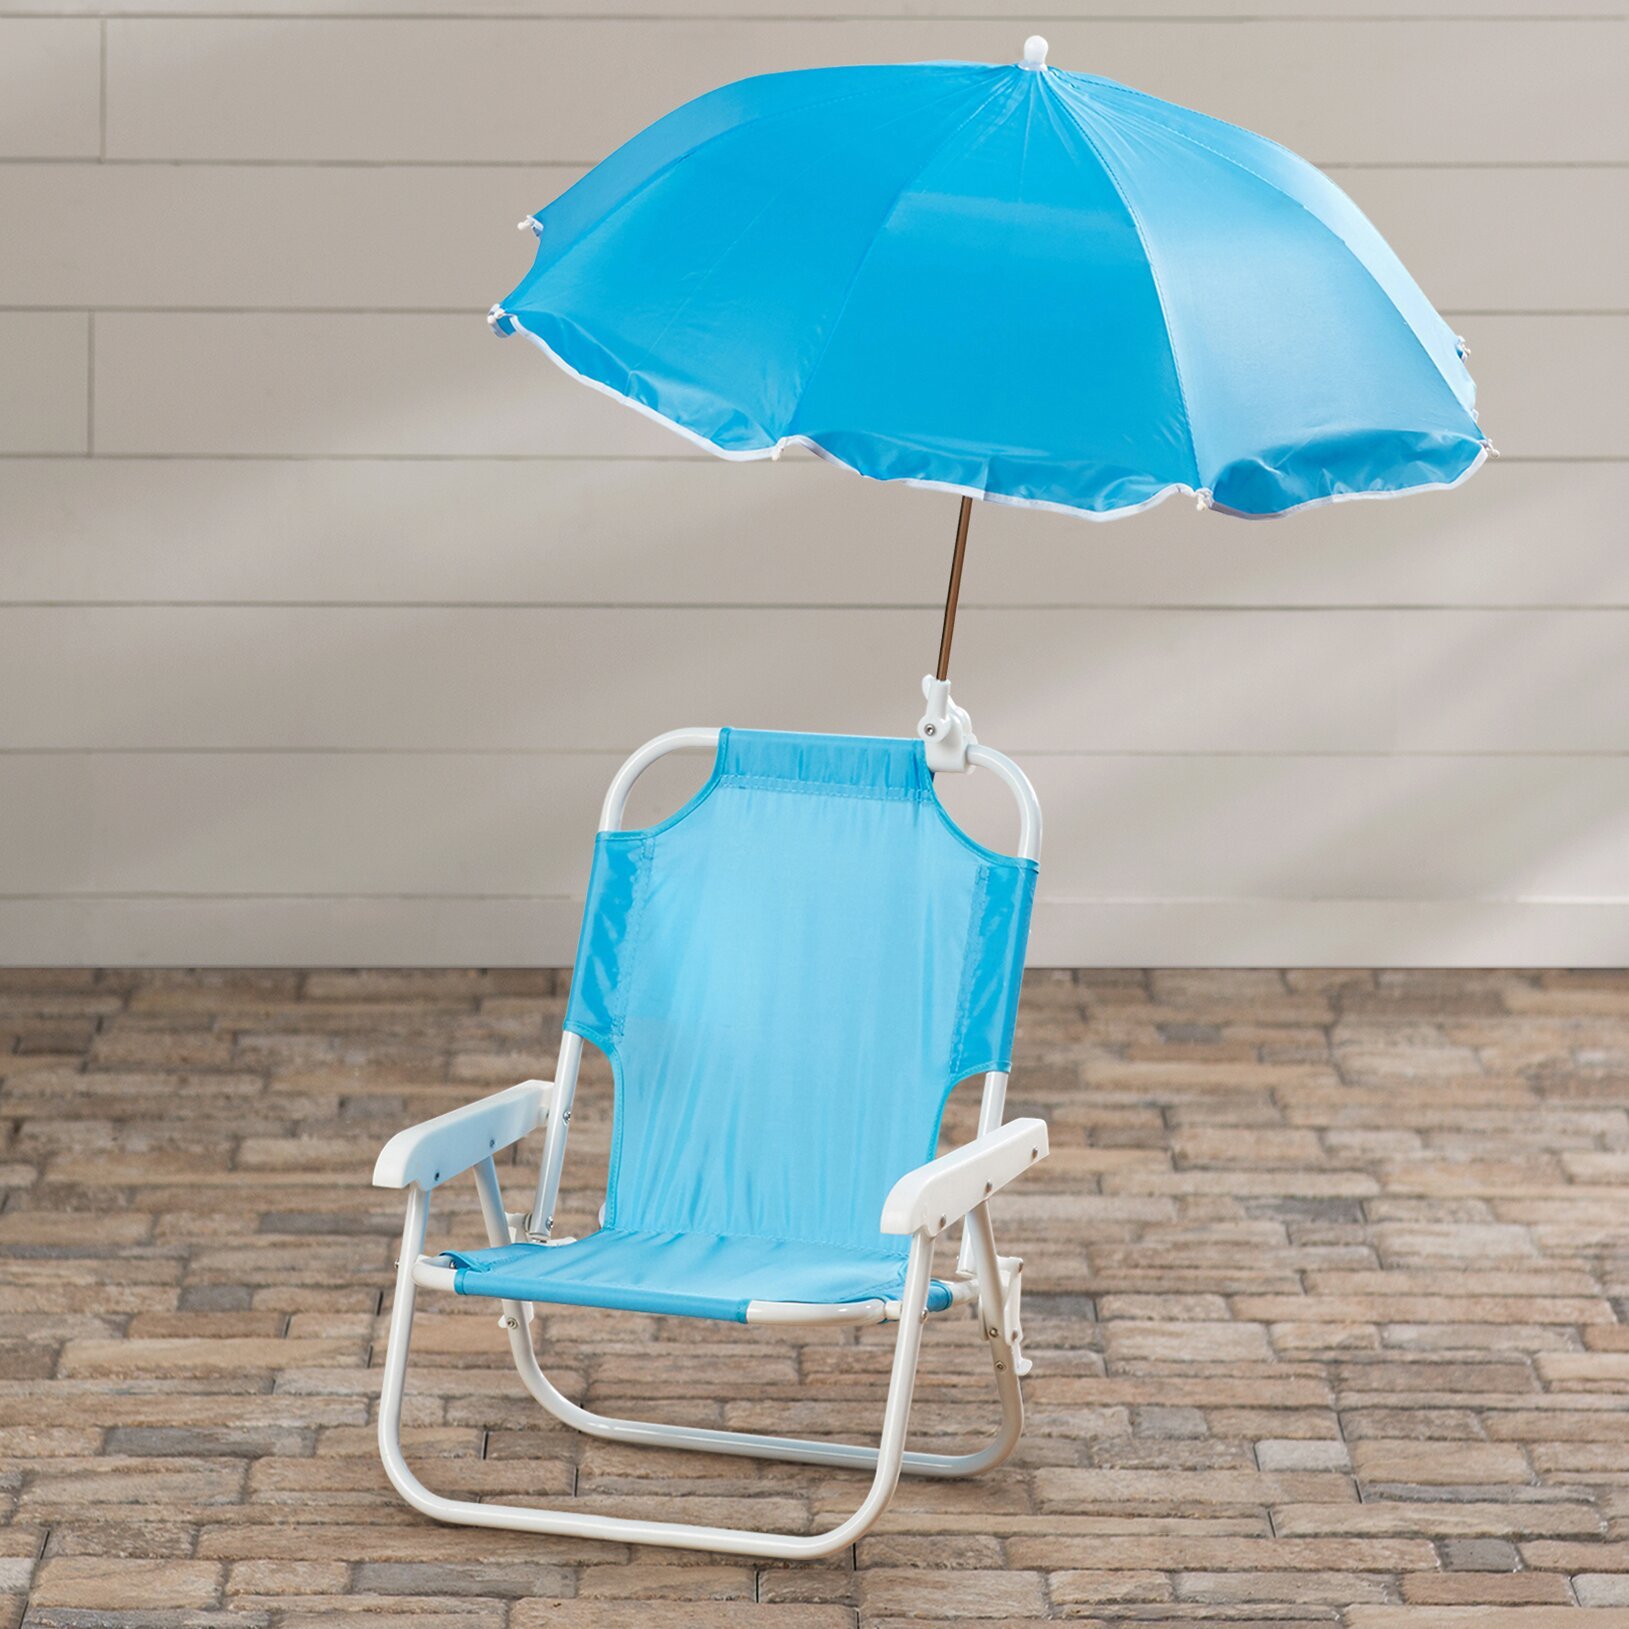 Child Size Folding Chairs child beach chair the laundry will wait child size folding beach